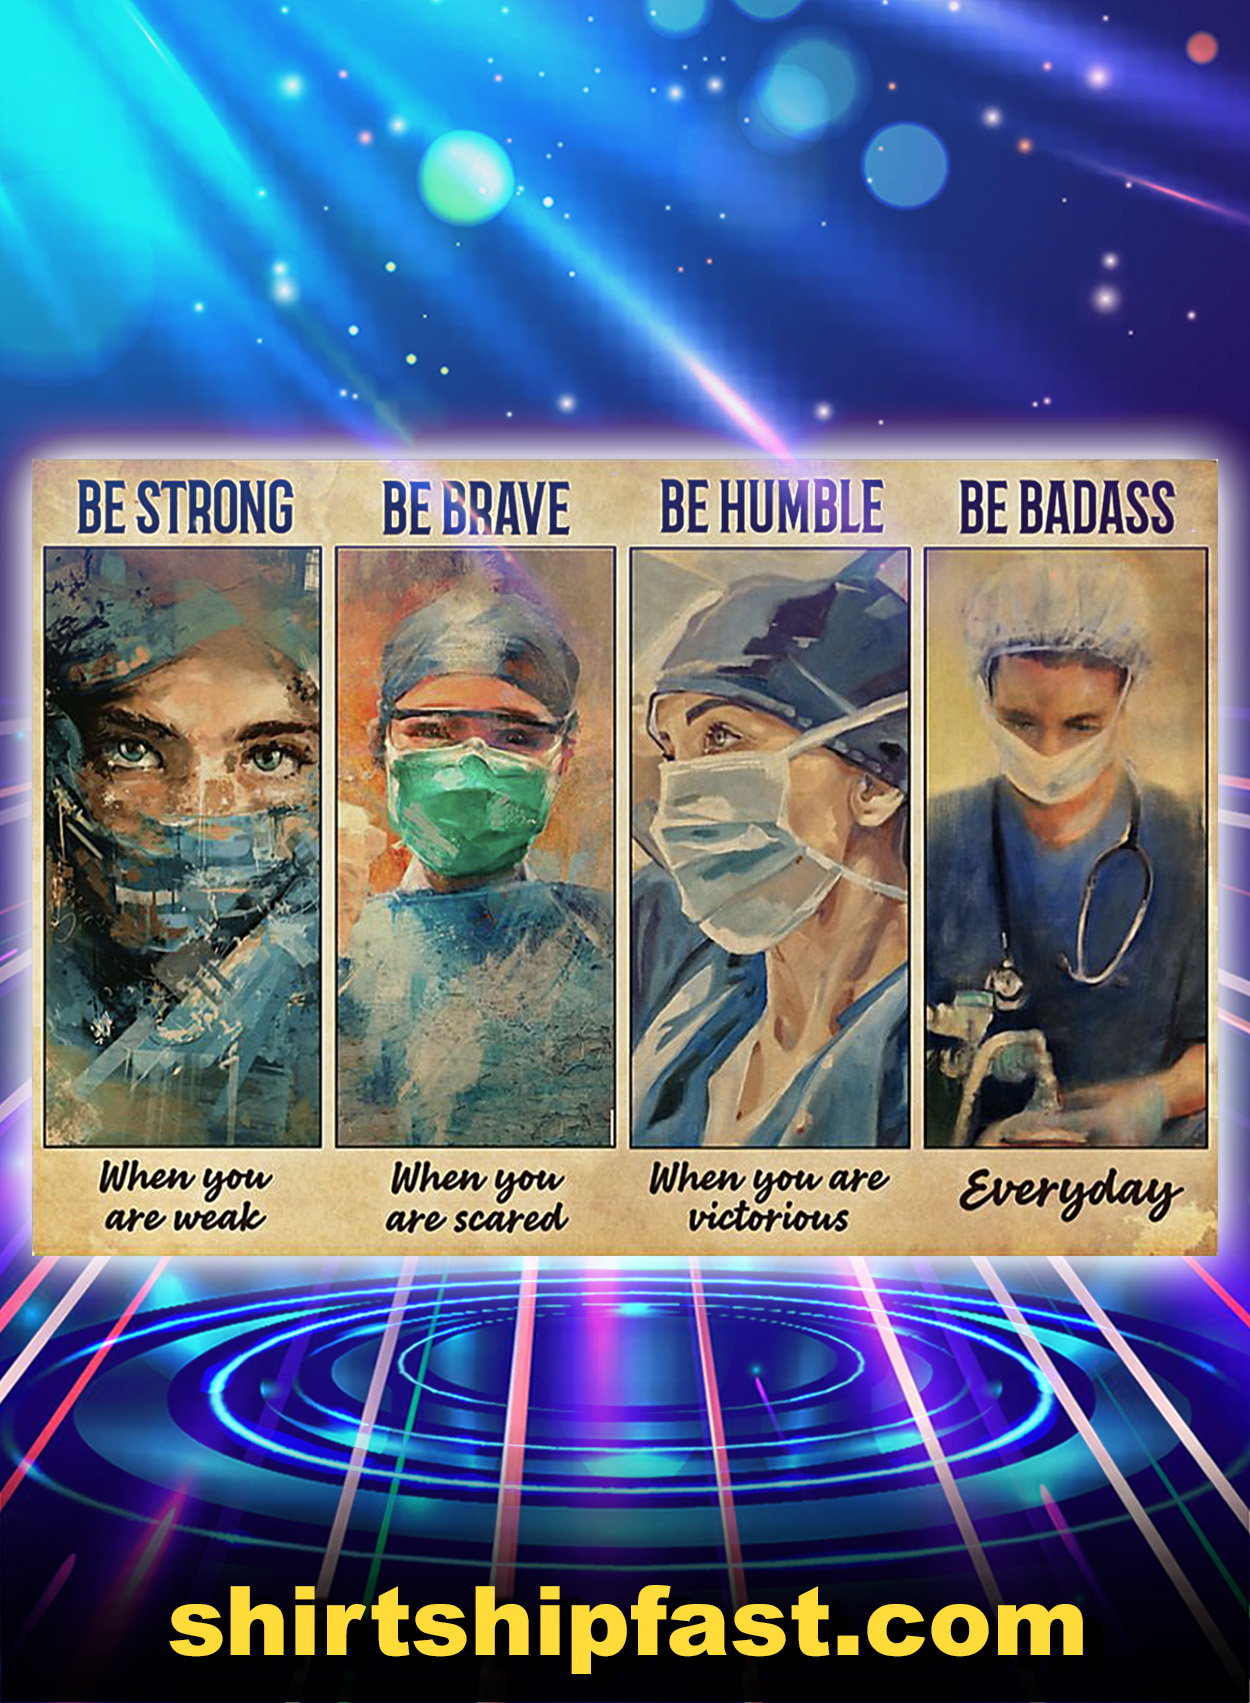 Female physicians be strong be brave be humble be badass poster - A2